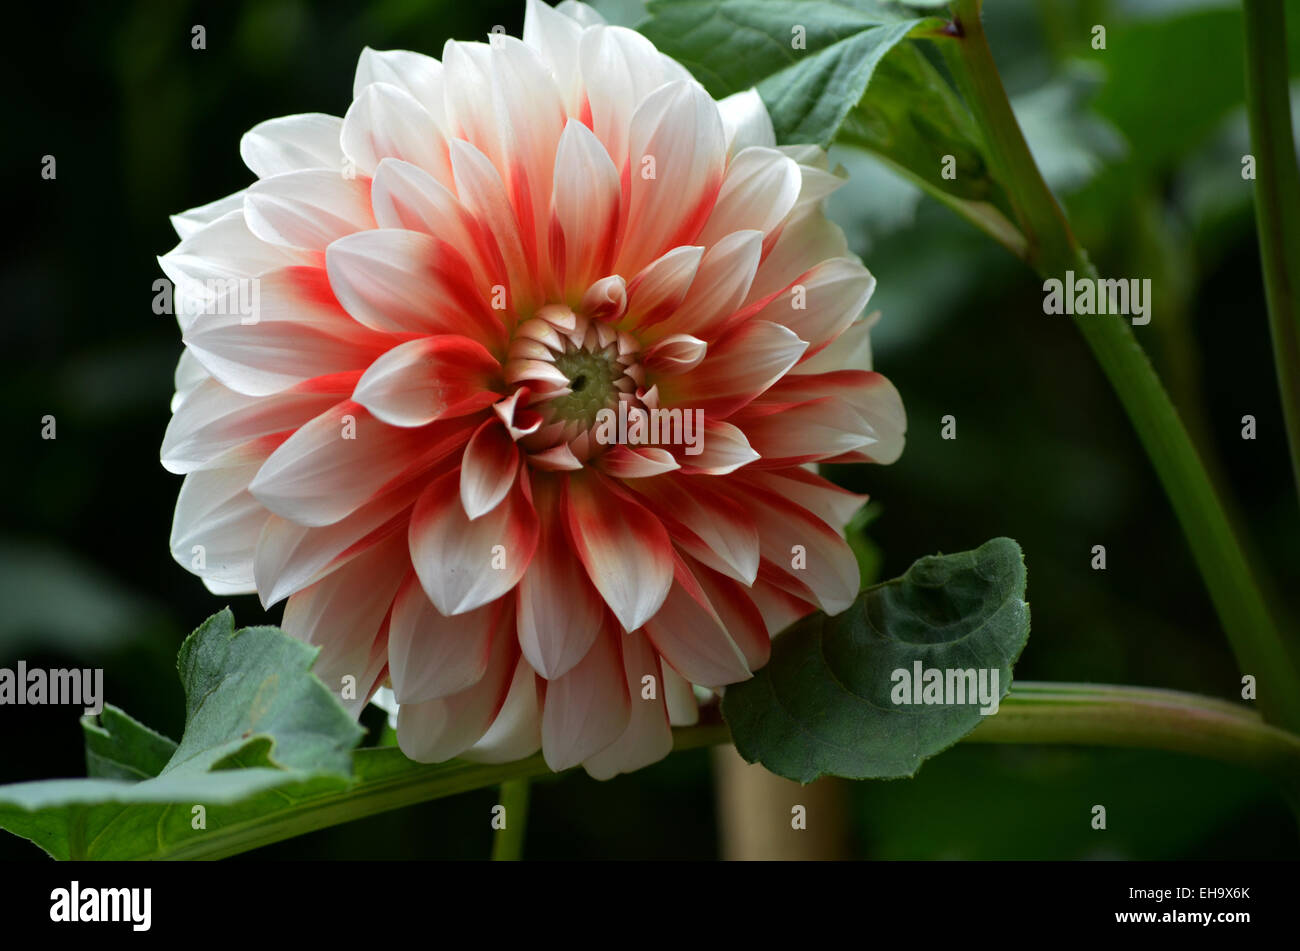 India dahlia flower stock photos india dahlia flower stock images close up of red and white dahlia flower in botanical garden at ootytamilnadu izmirmasajfo